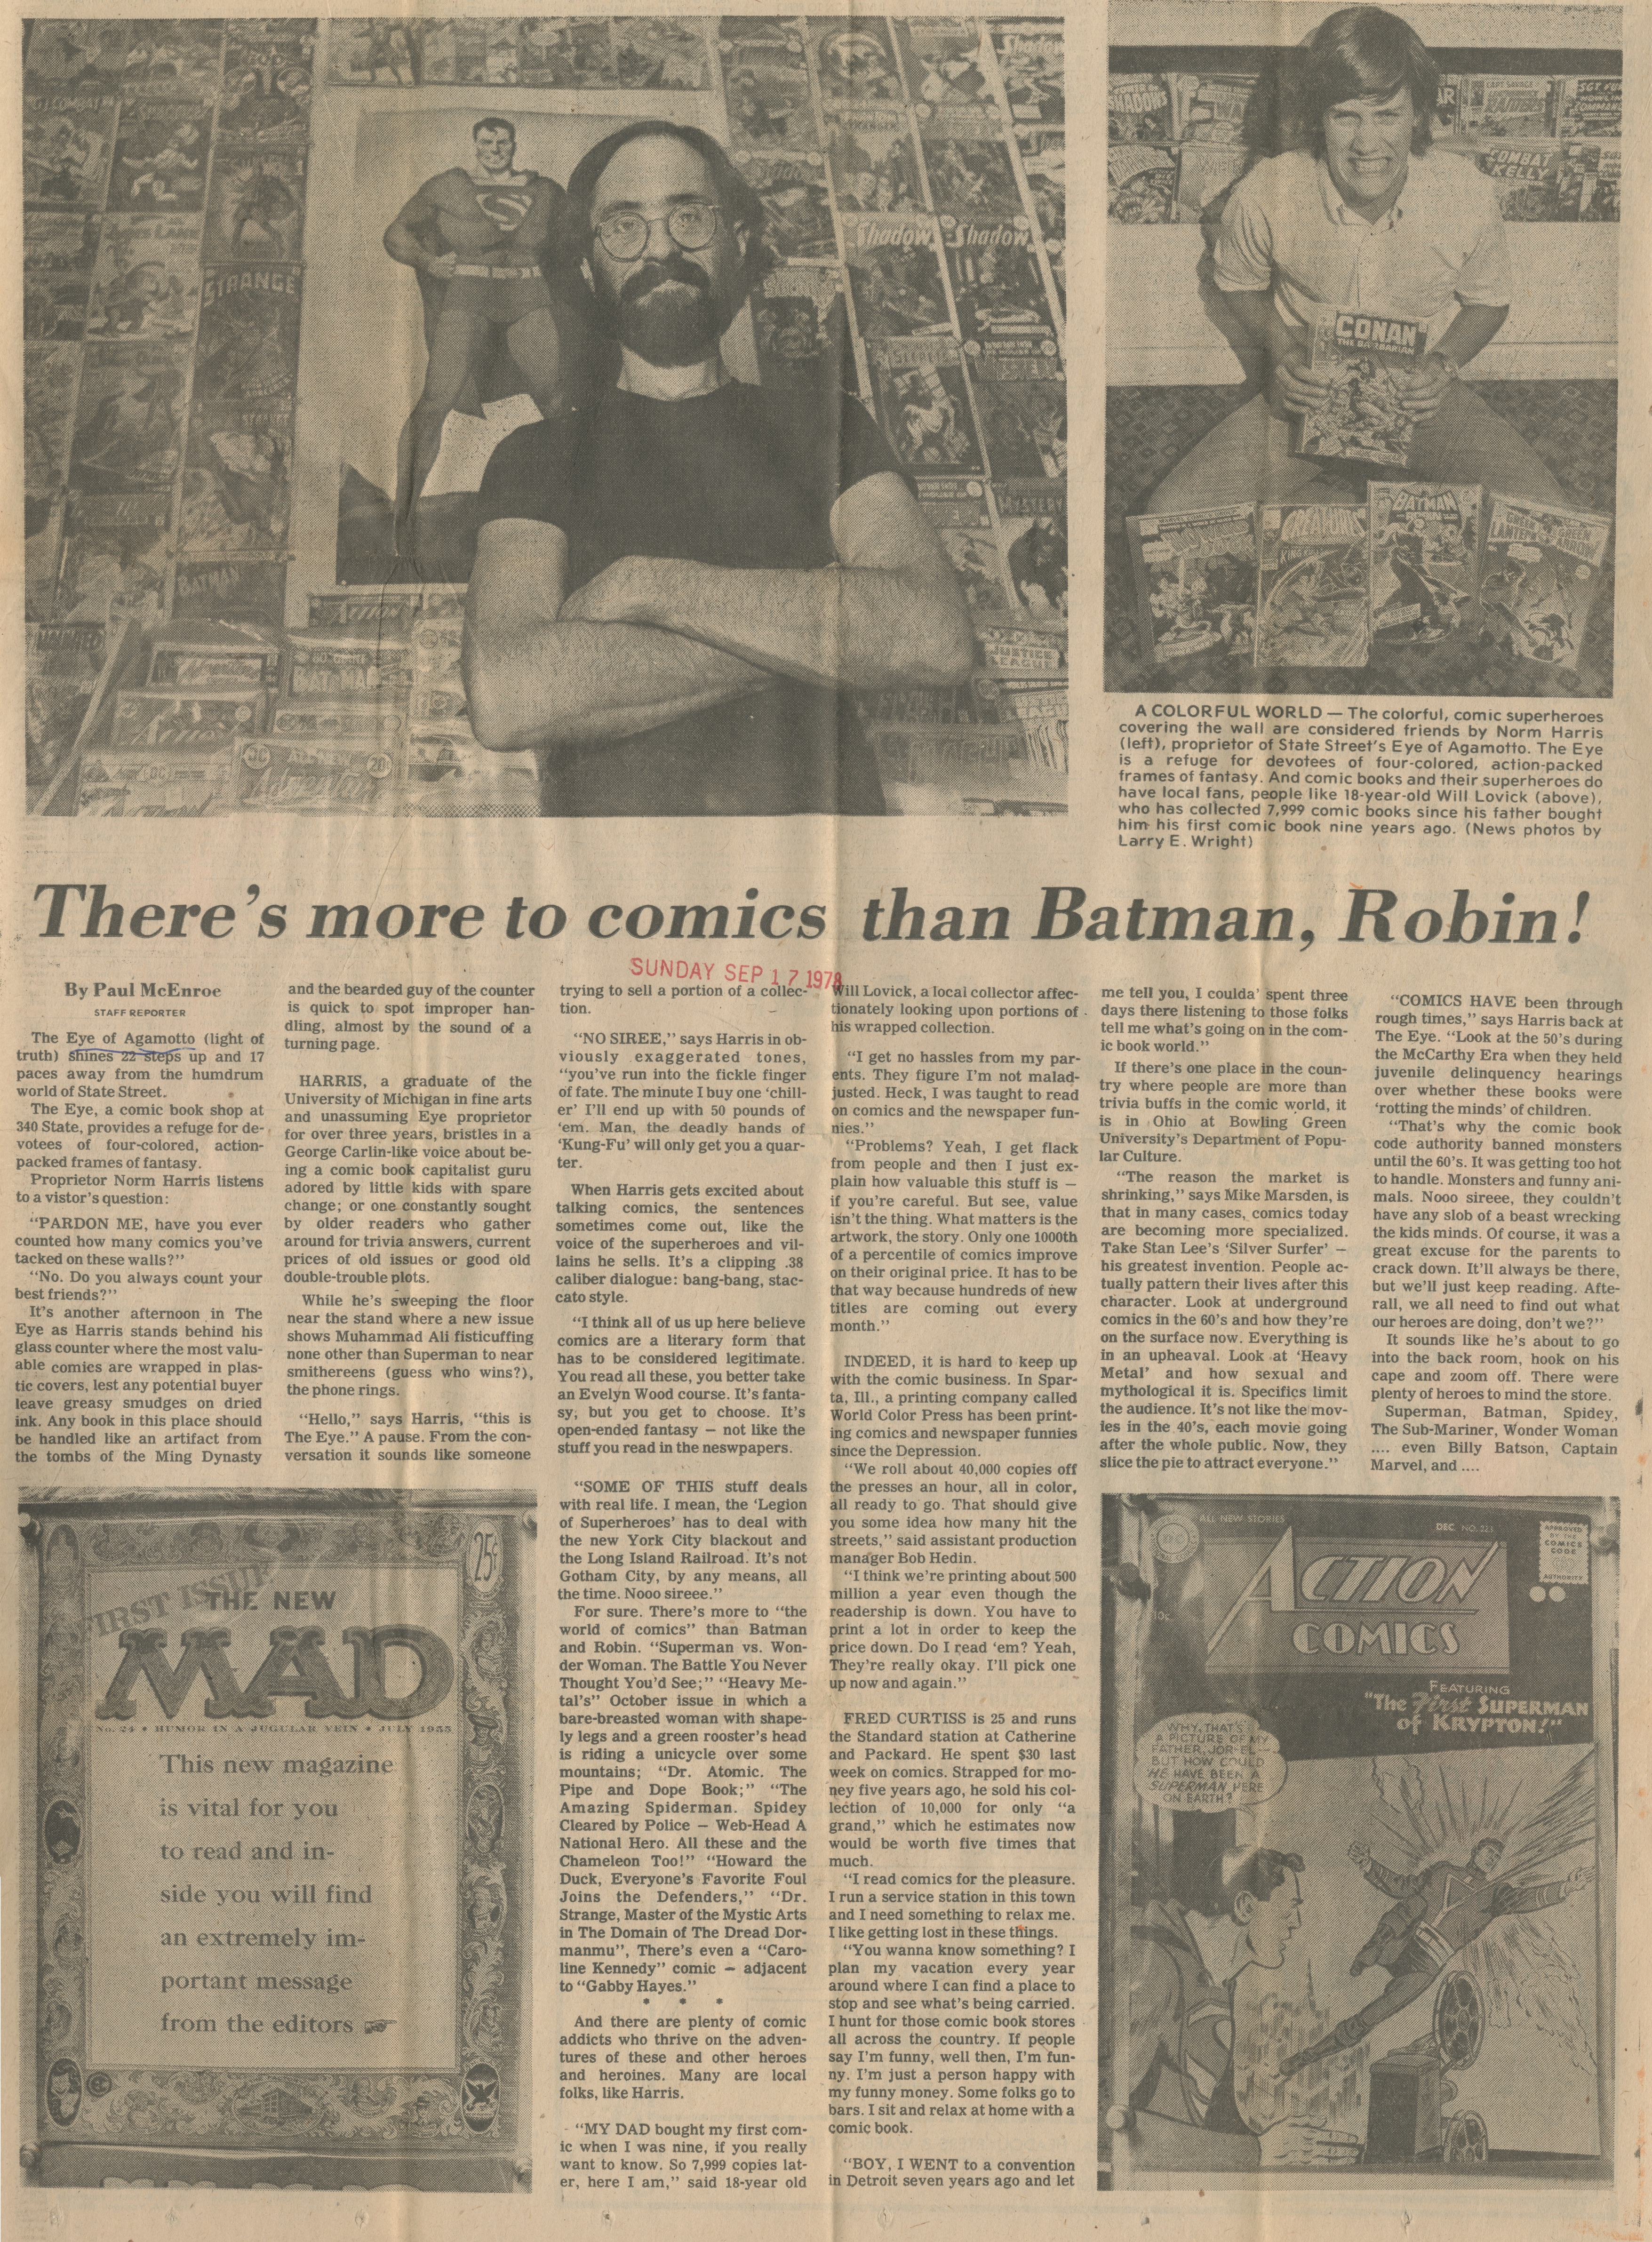 There's more to comics than Batman, Robin! image